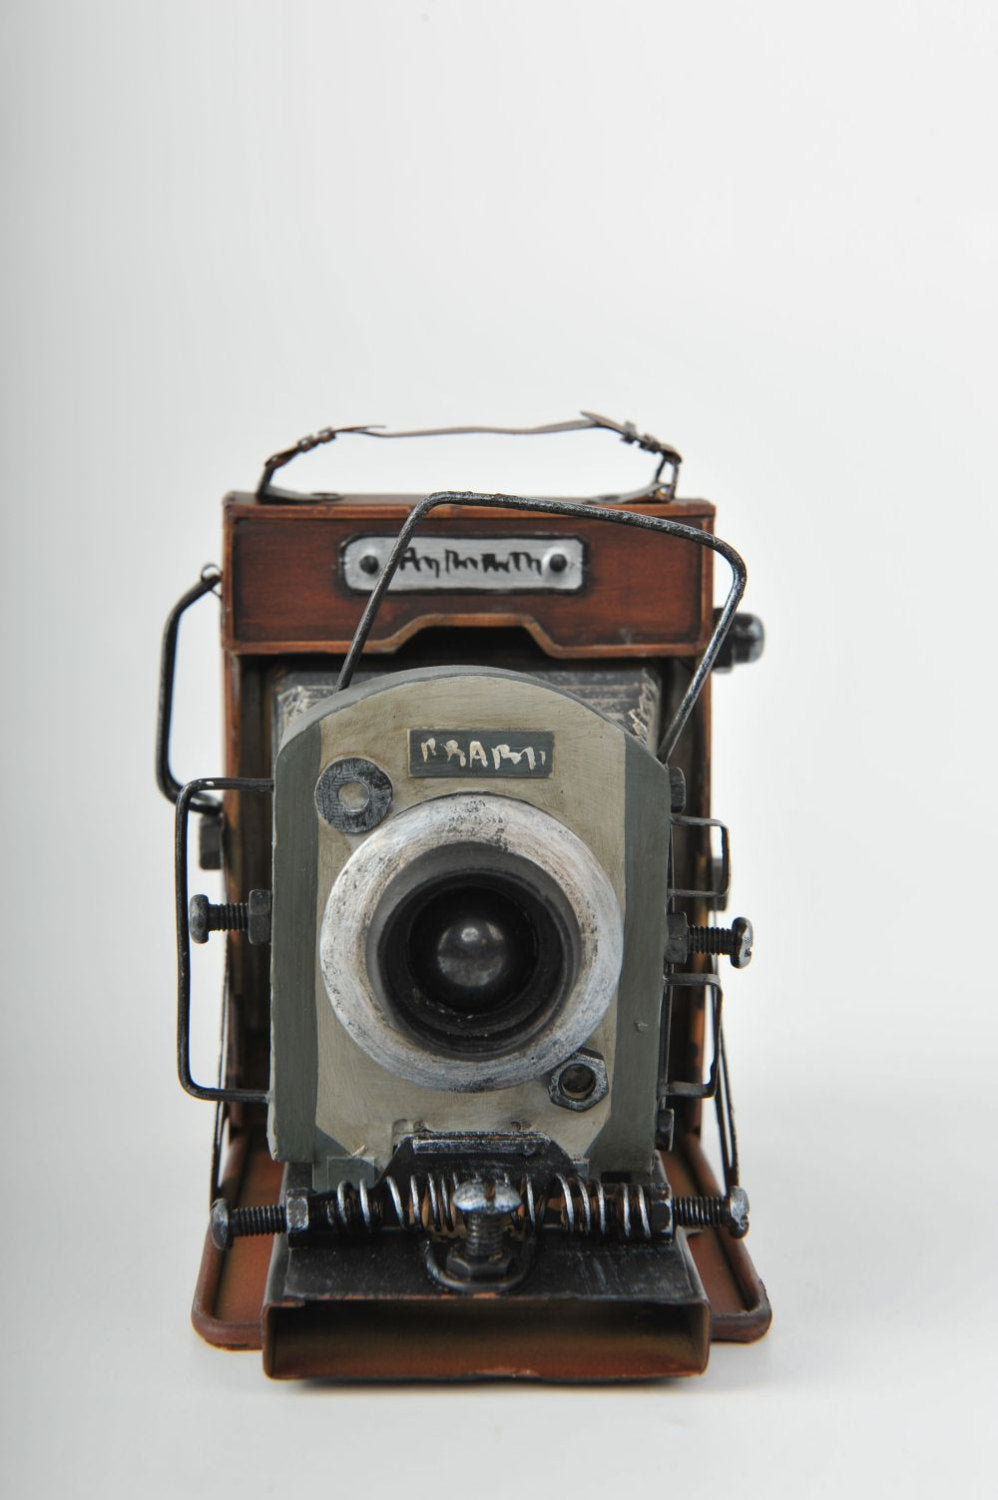 Wood and Metal 1950's Camera Replica Vintage Decoration Antique Trinket Box